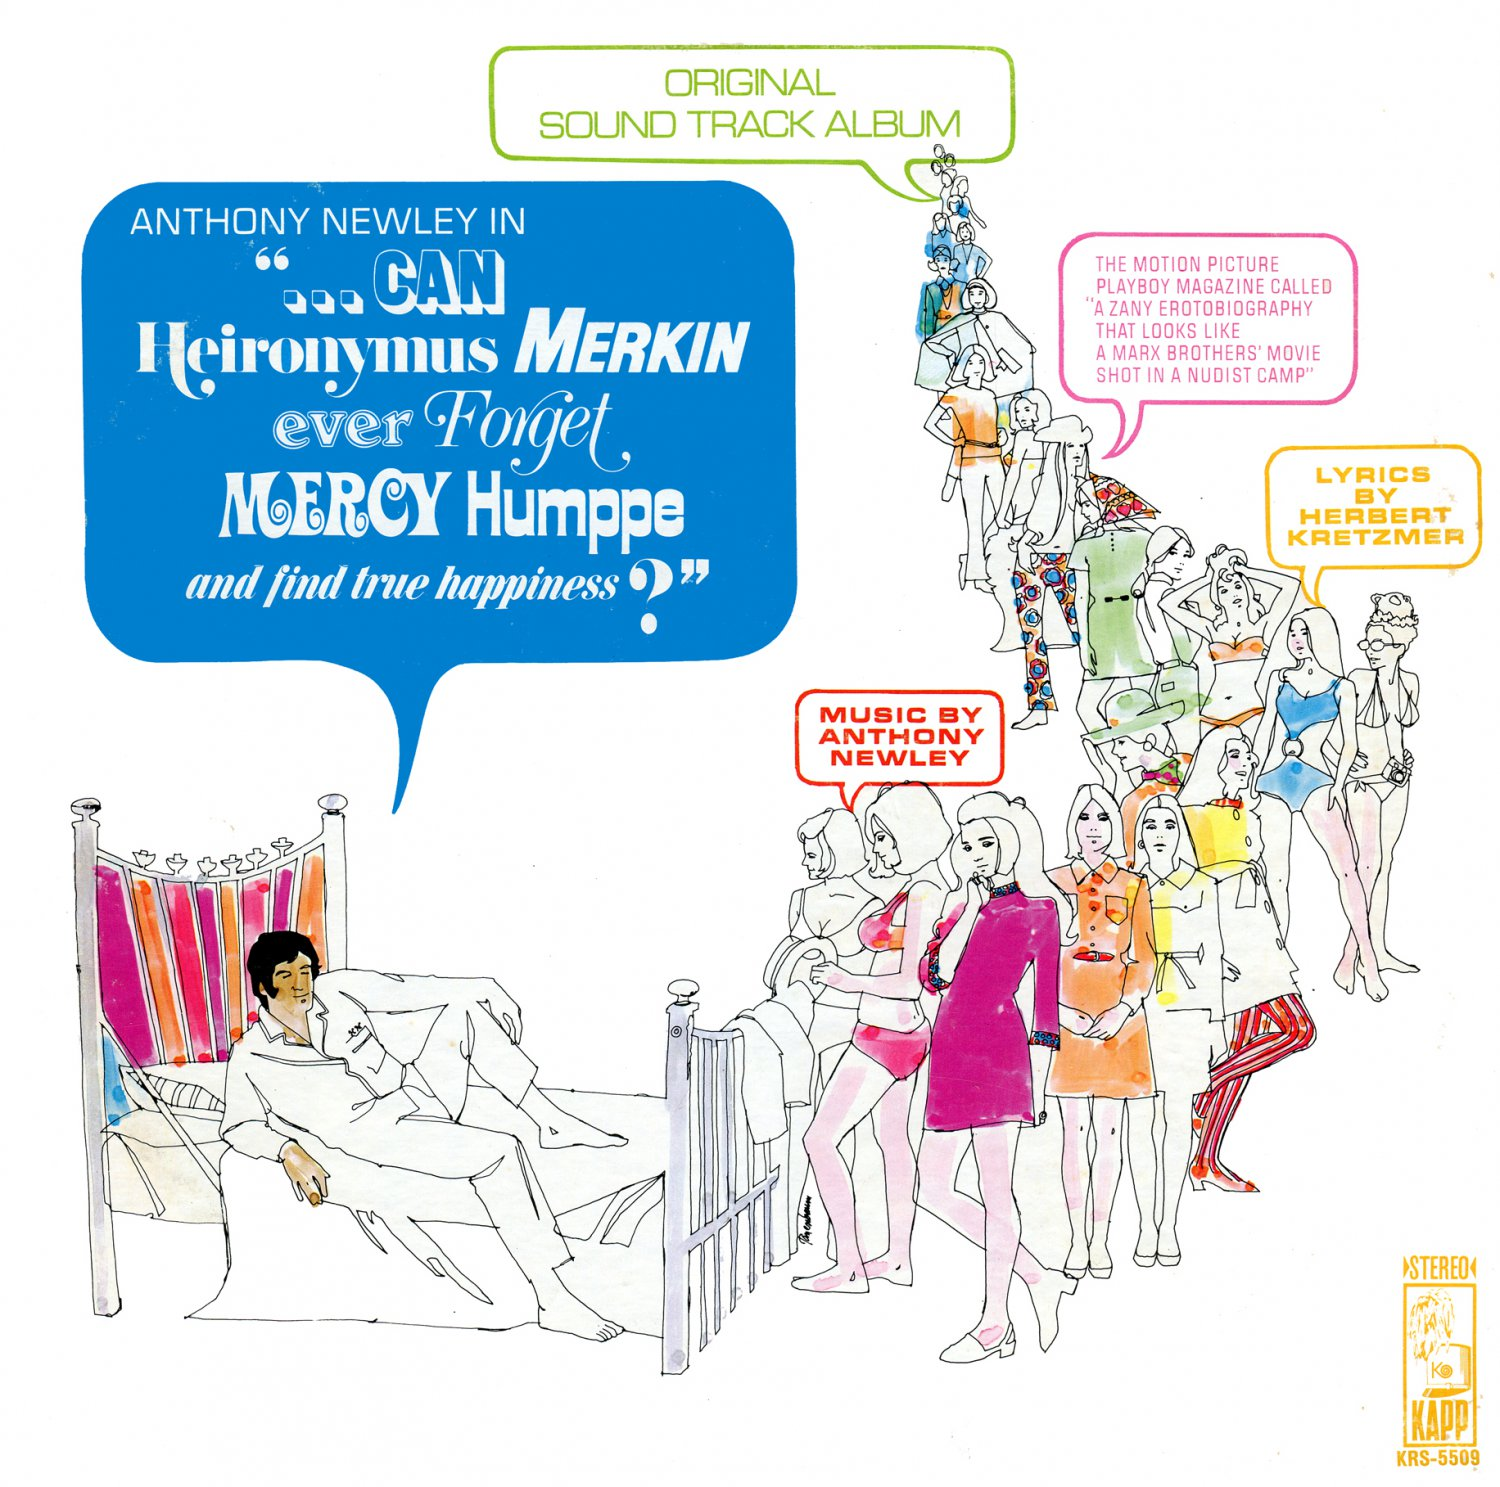 Can Heironymus Merkin Ever Forget Mercy Hope And Find True Happiness - Original Soundtrack LP/CD